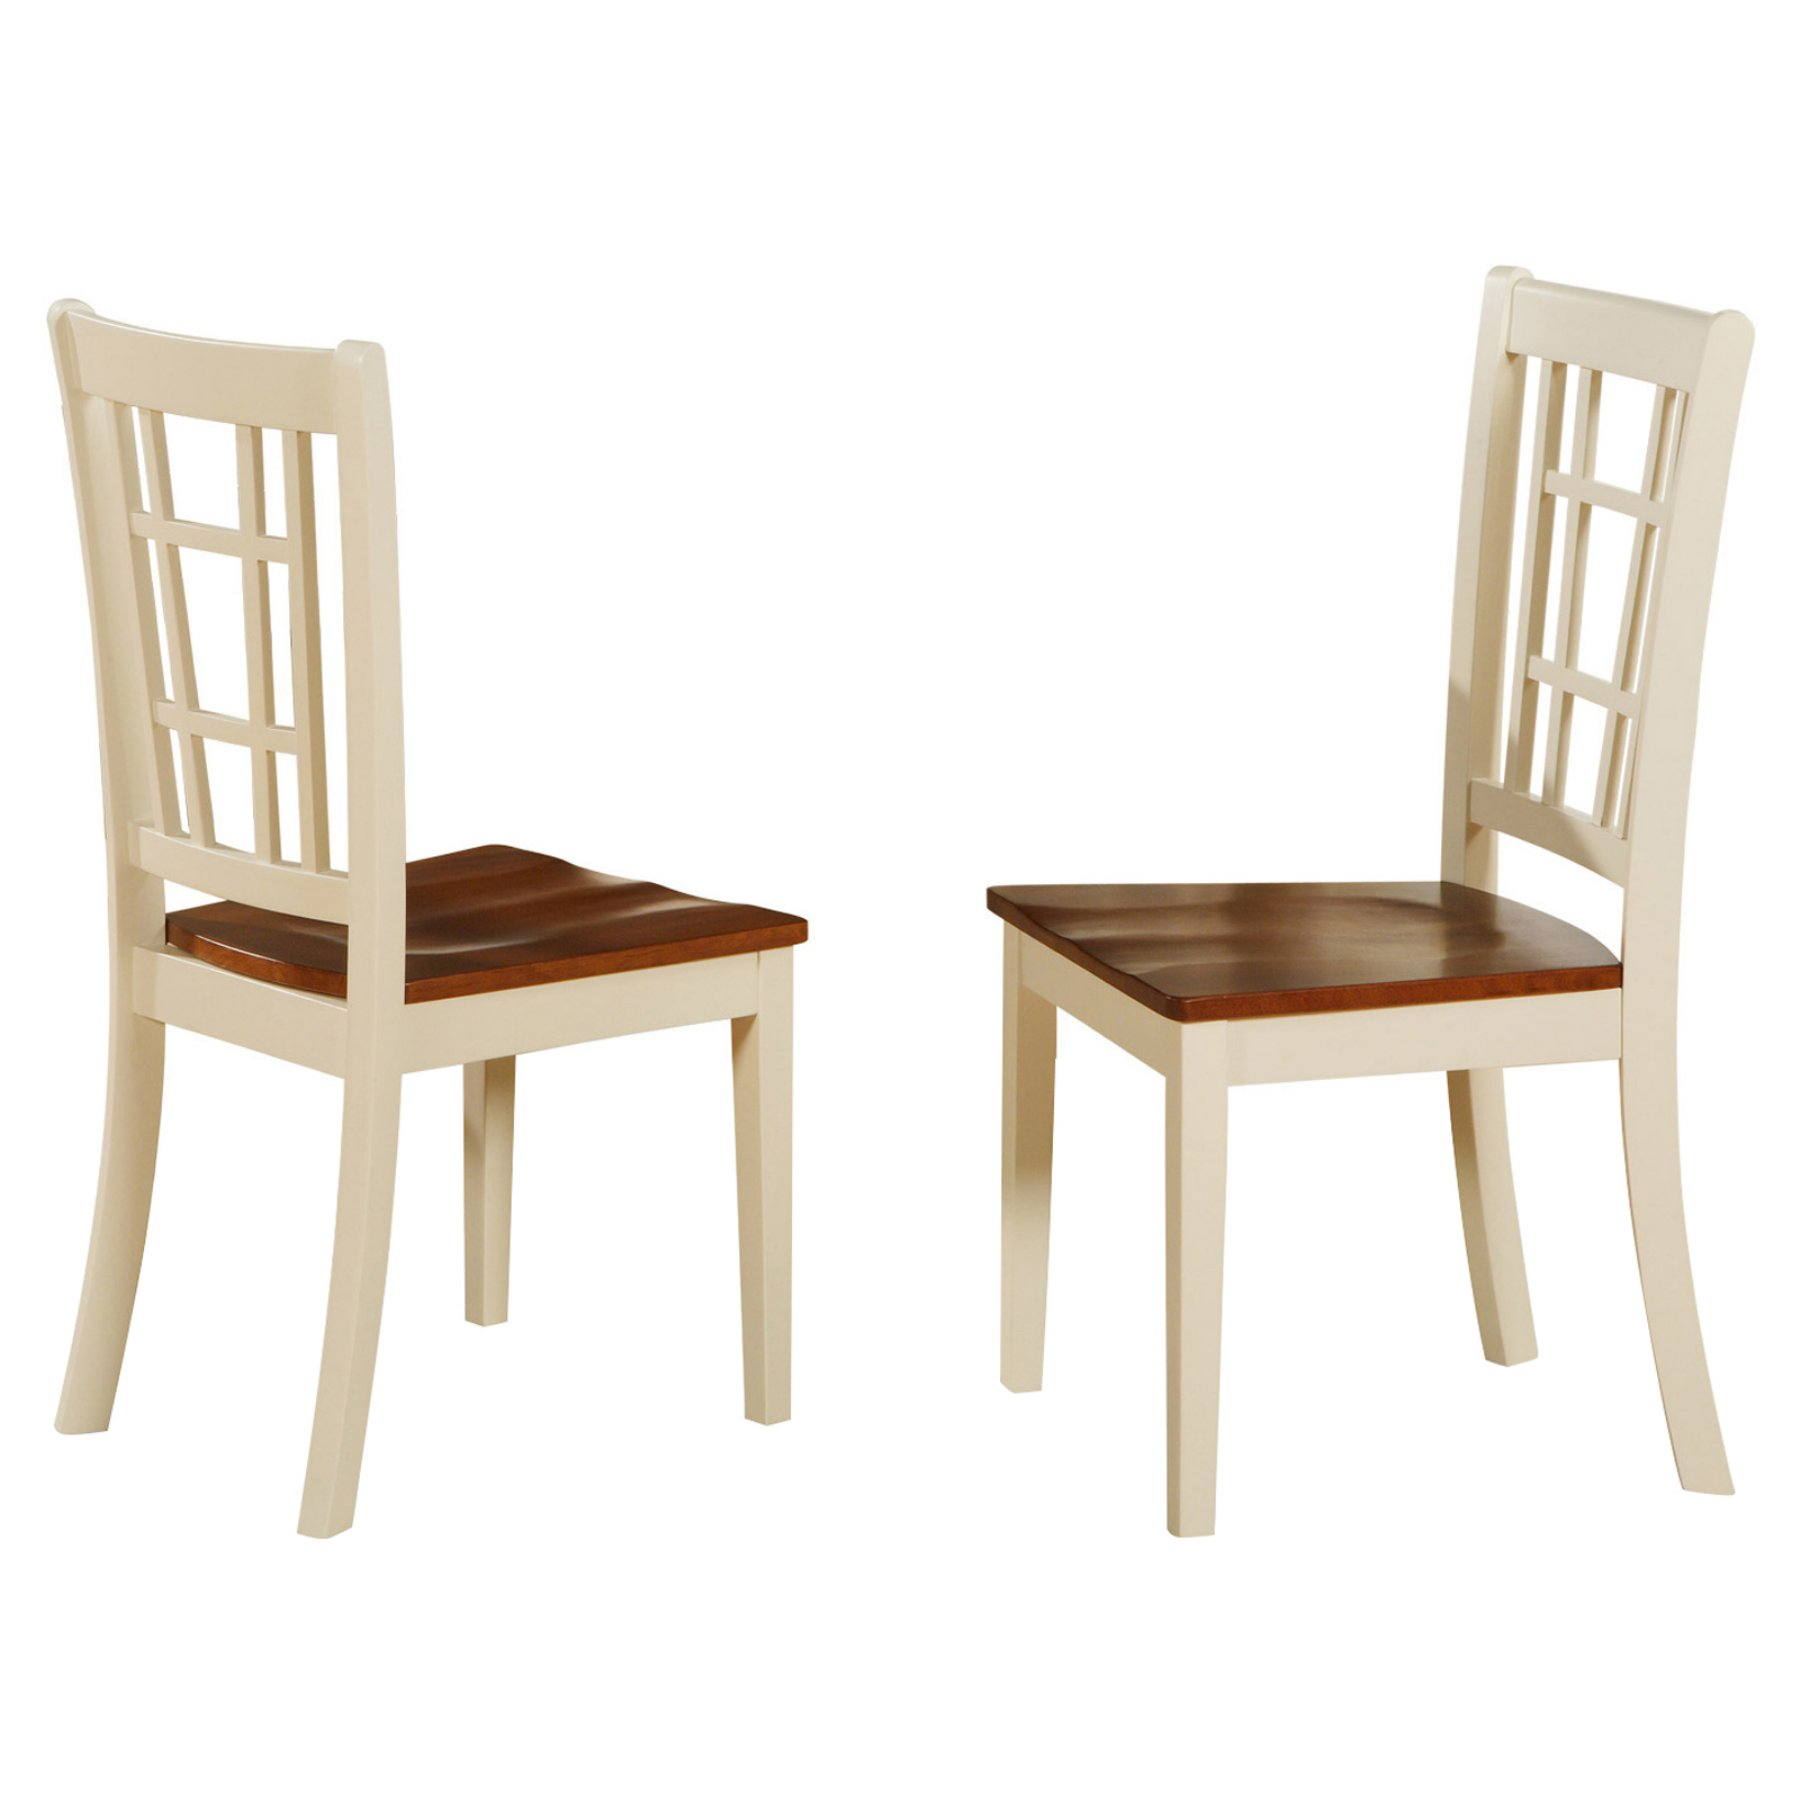 Pleasant East West Furniture Nicoli Dining Chair With Wooden Seat Gmtry Best Dining Table And Chair Ideas Images Gmtryco